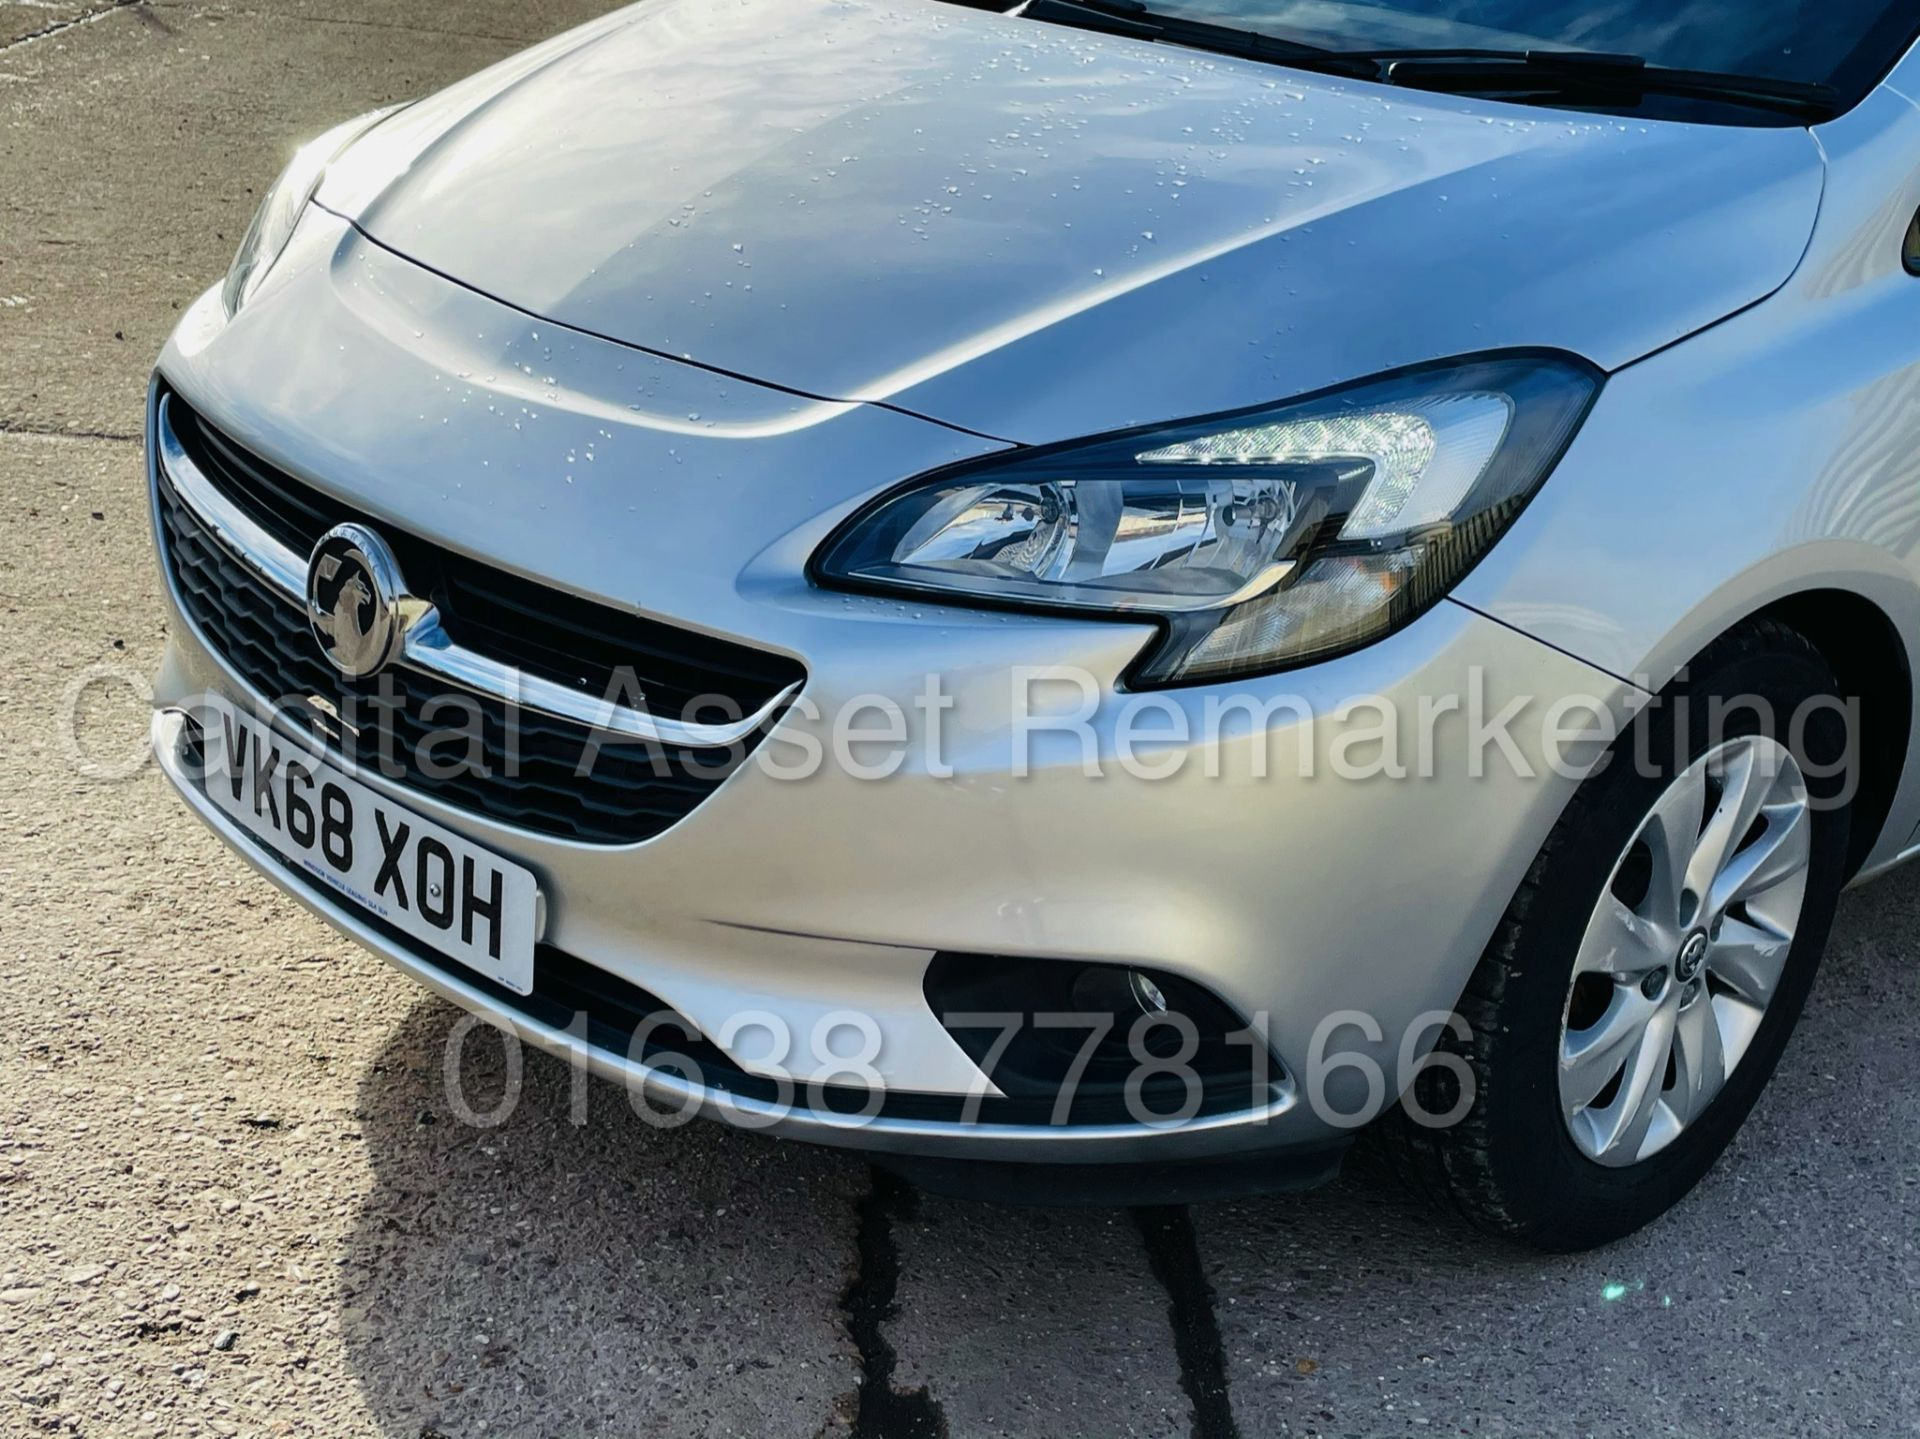 On Sale VAUXHALL CORSA *DESIGN EDITION* 5 DOOR HATCHBACK (2019 - NEW MODEL) 1.4 PETROL - (1 OWNER) - Image 16 of 42